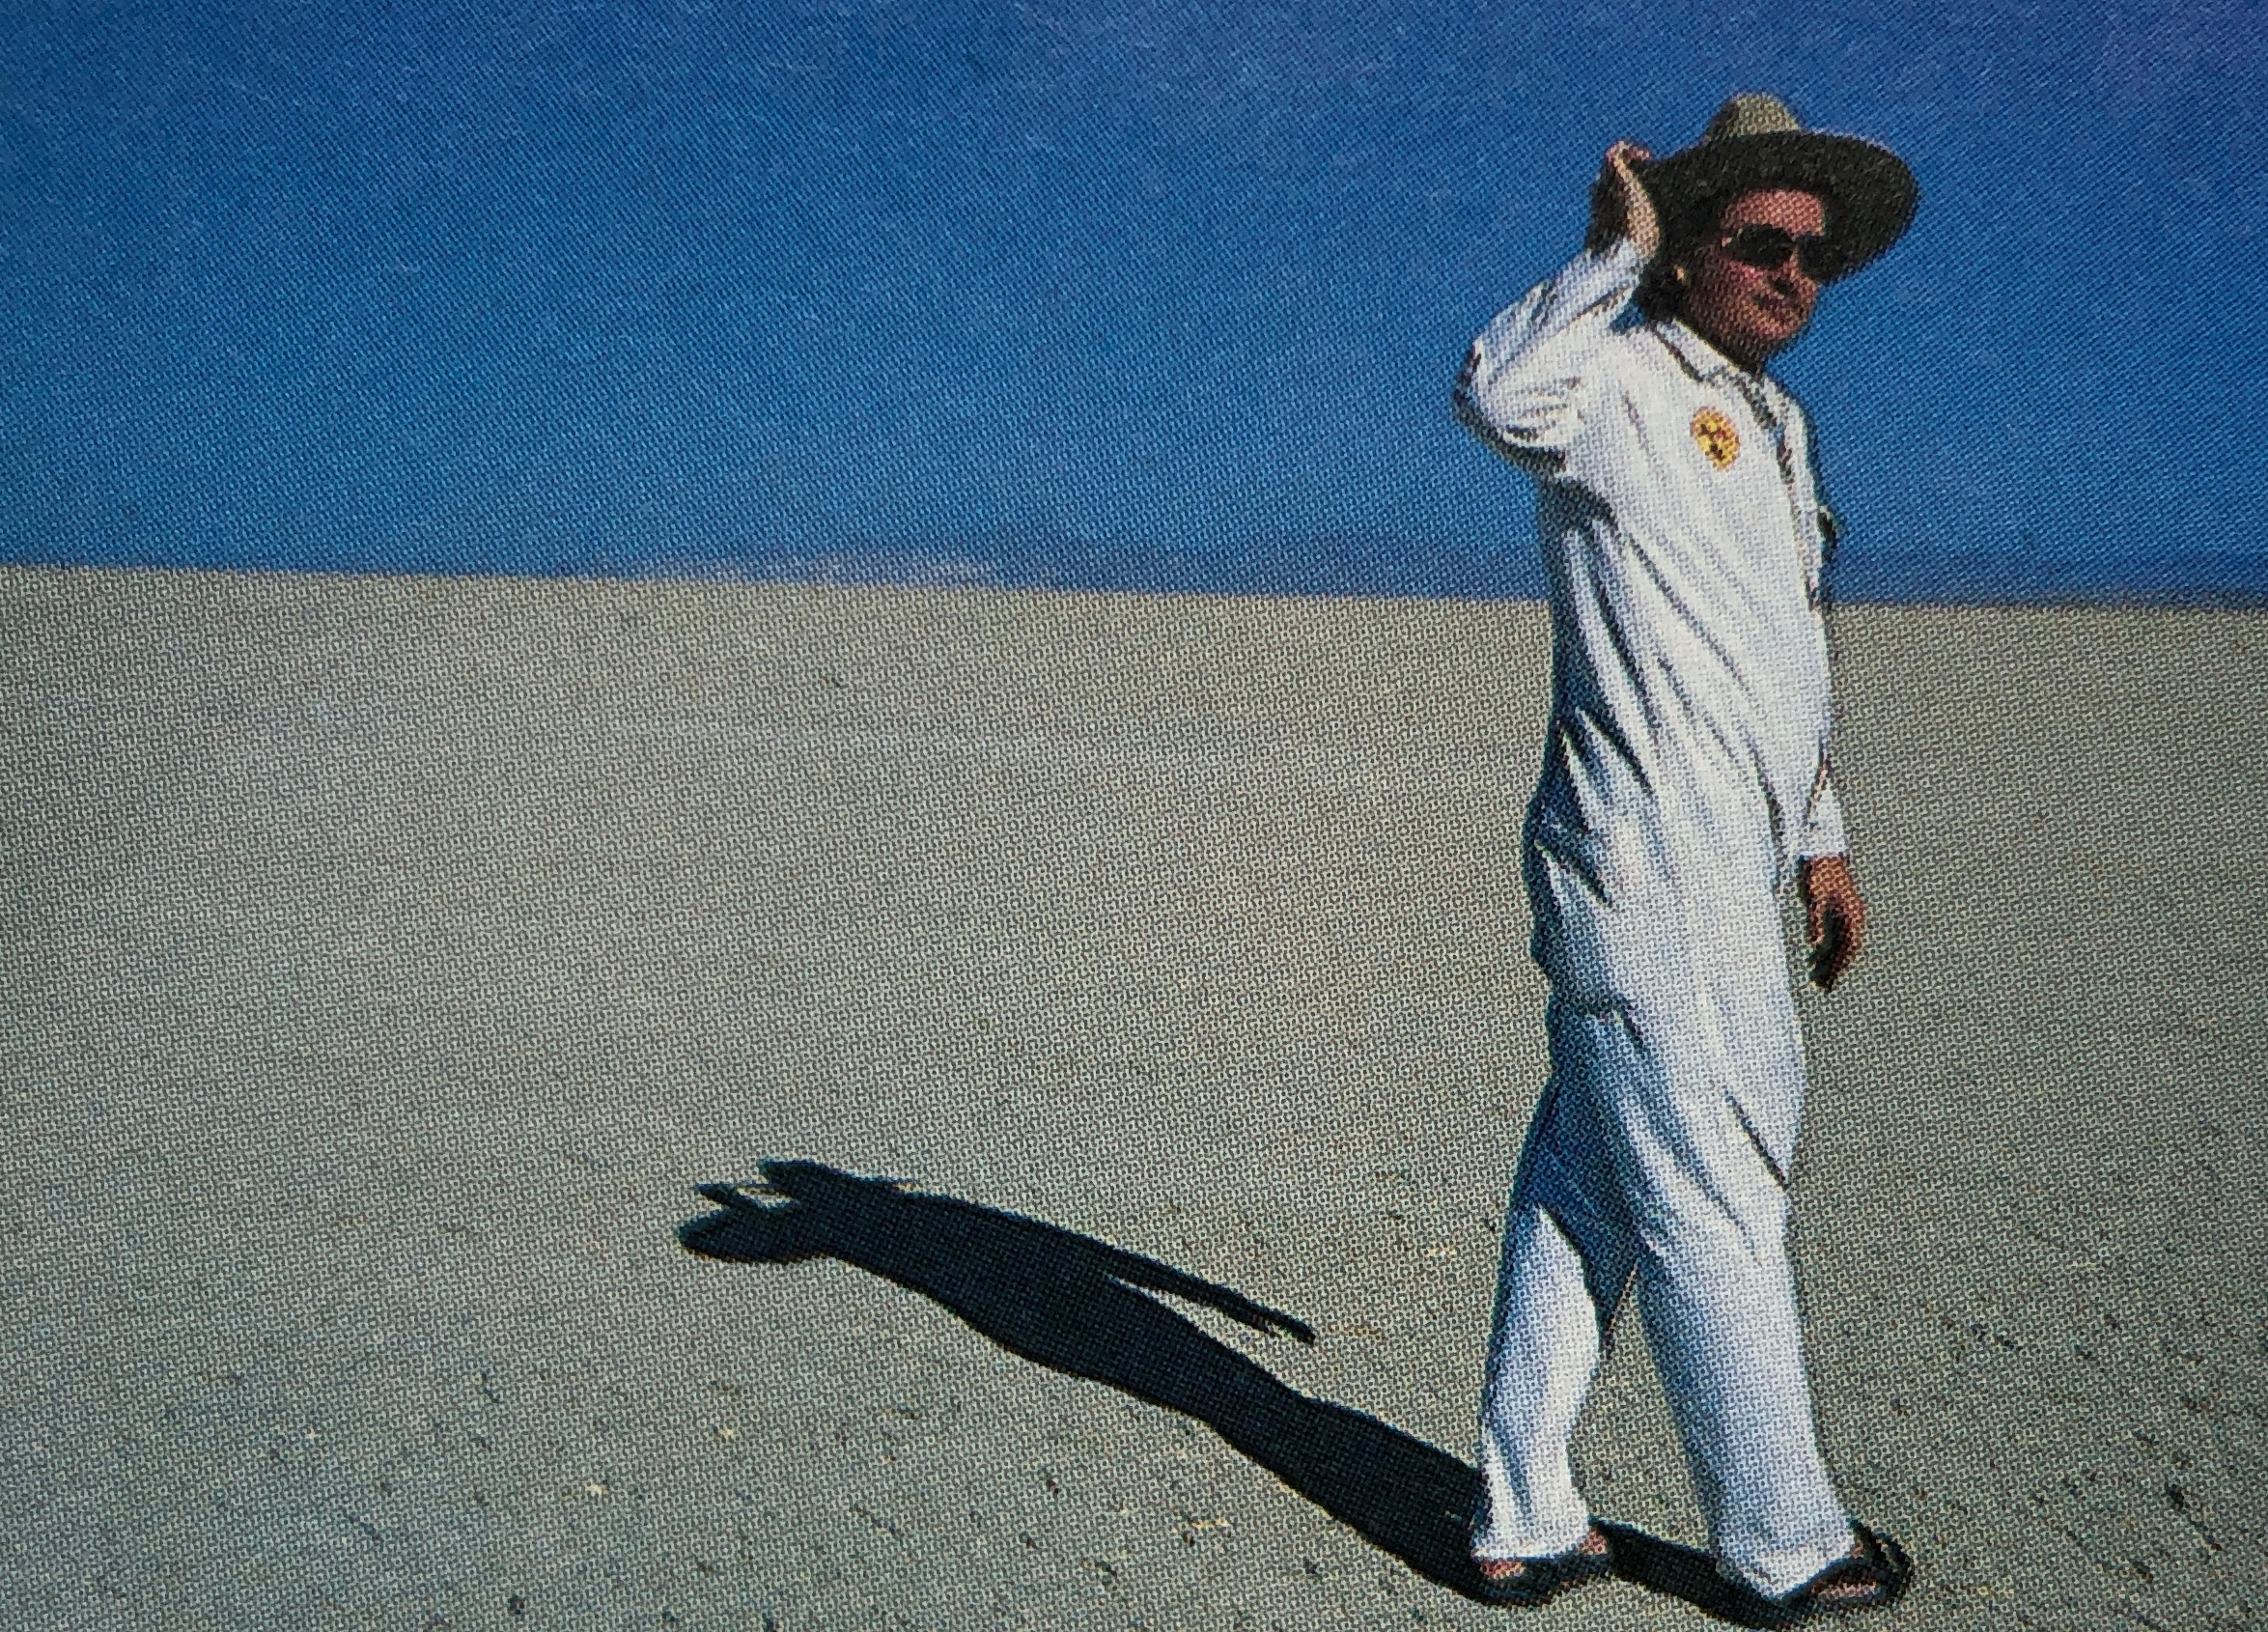 man in white suit.jpg